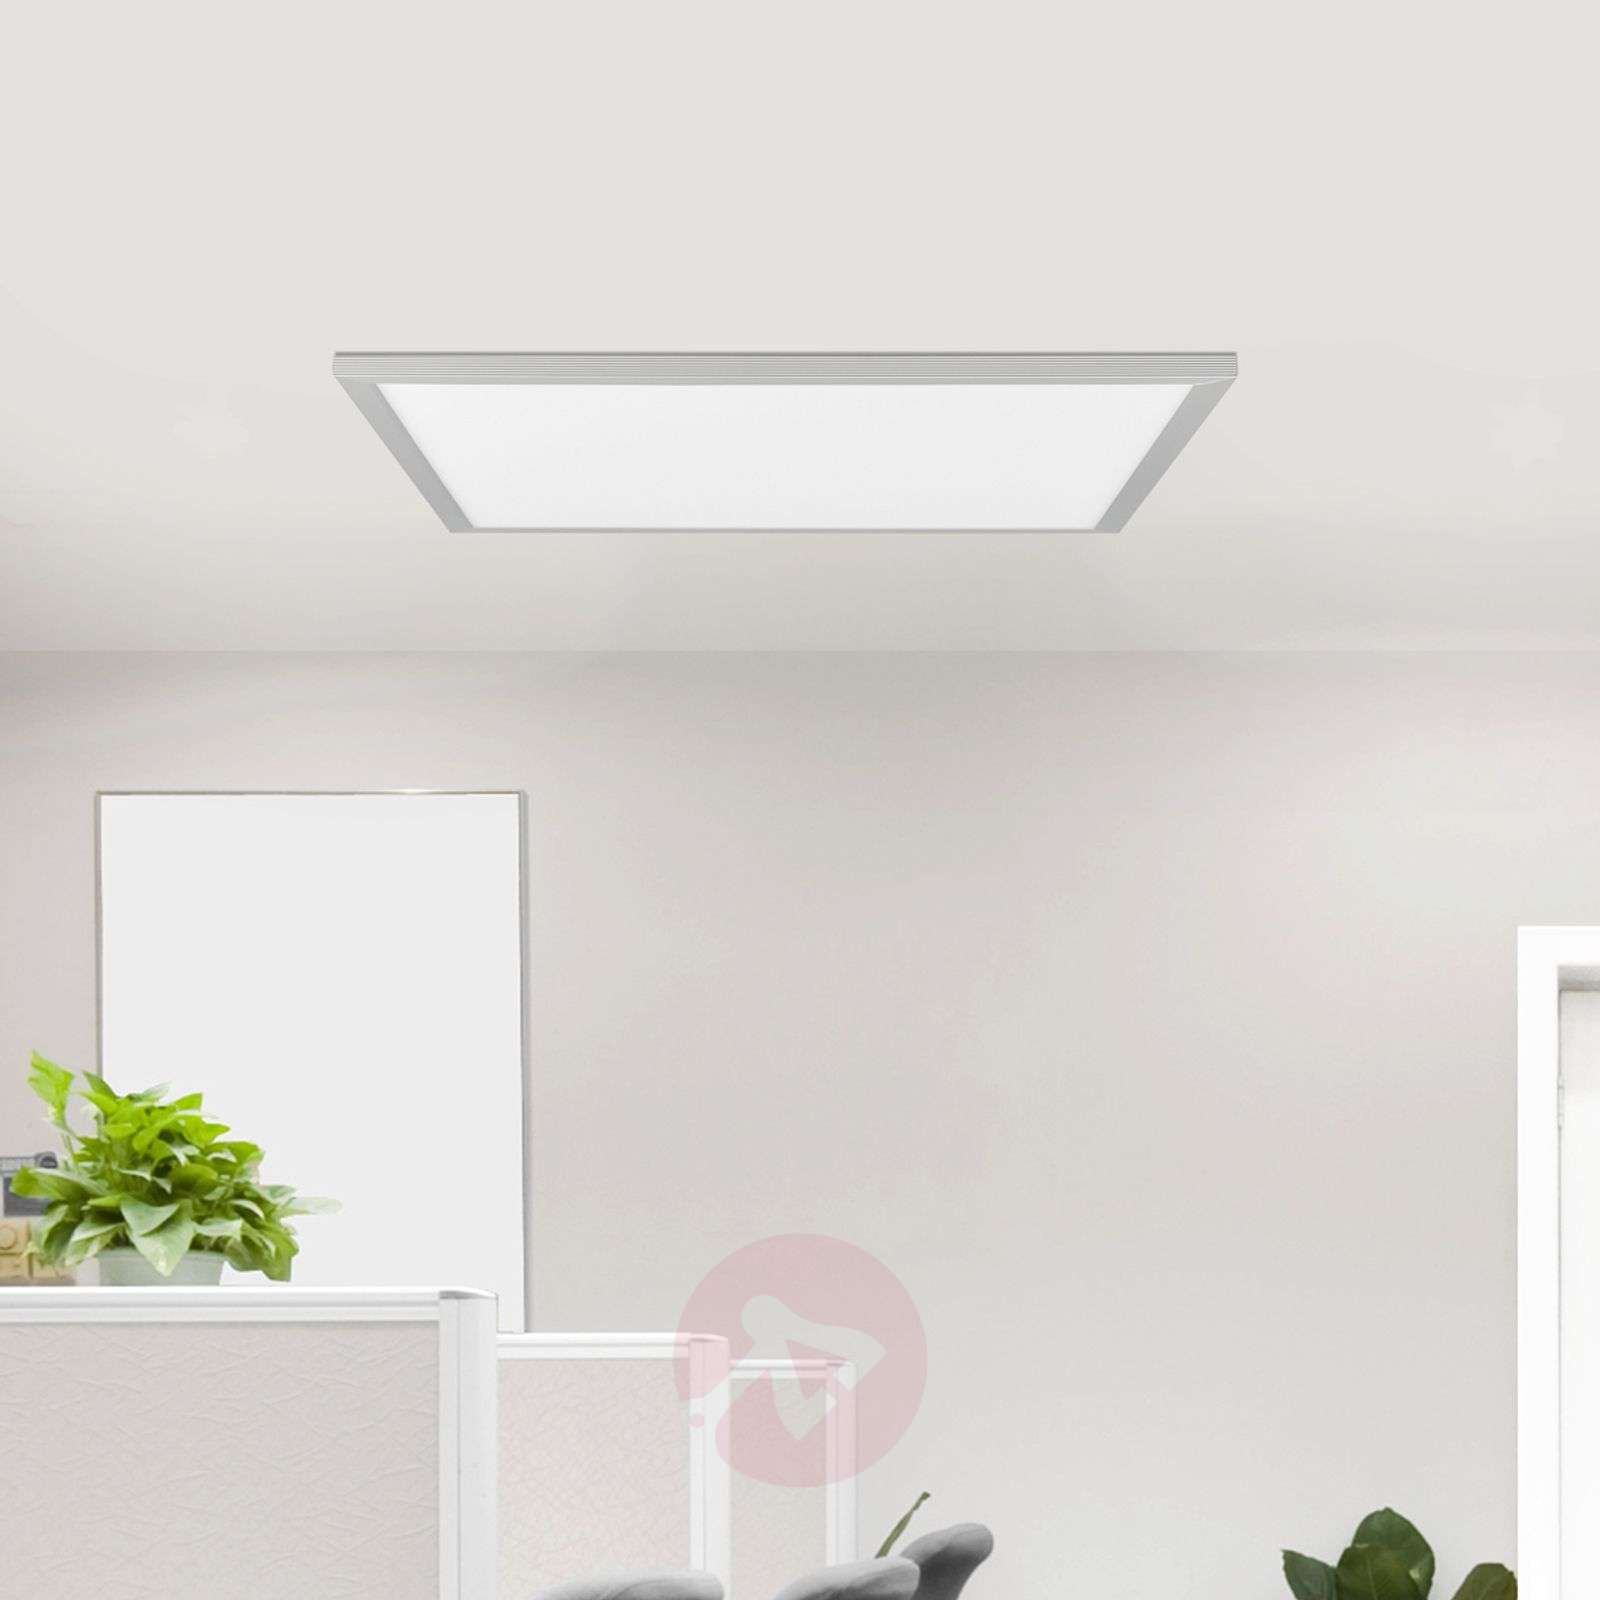 Panel LED All-in-One Edge, blanco universal-3002135-011